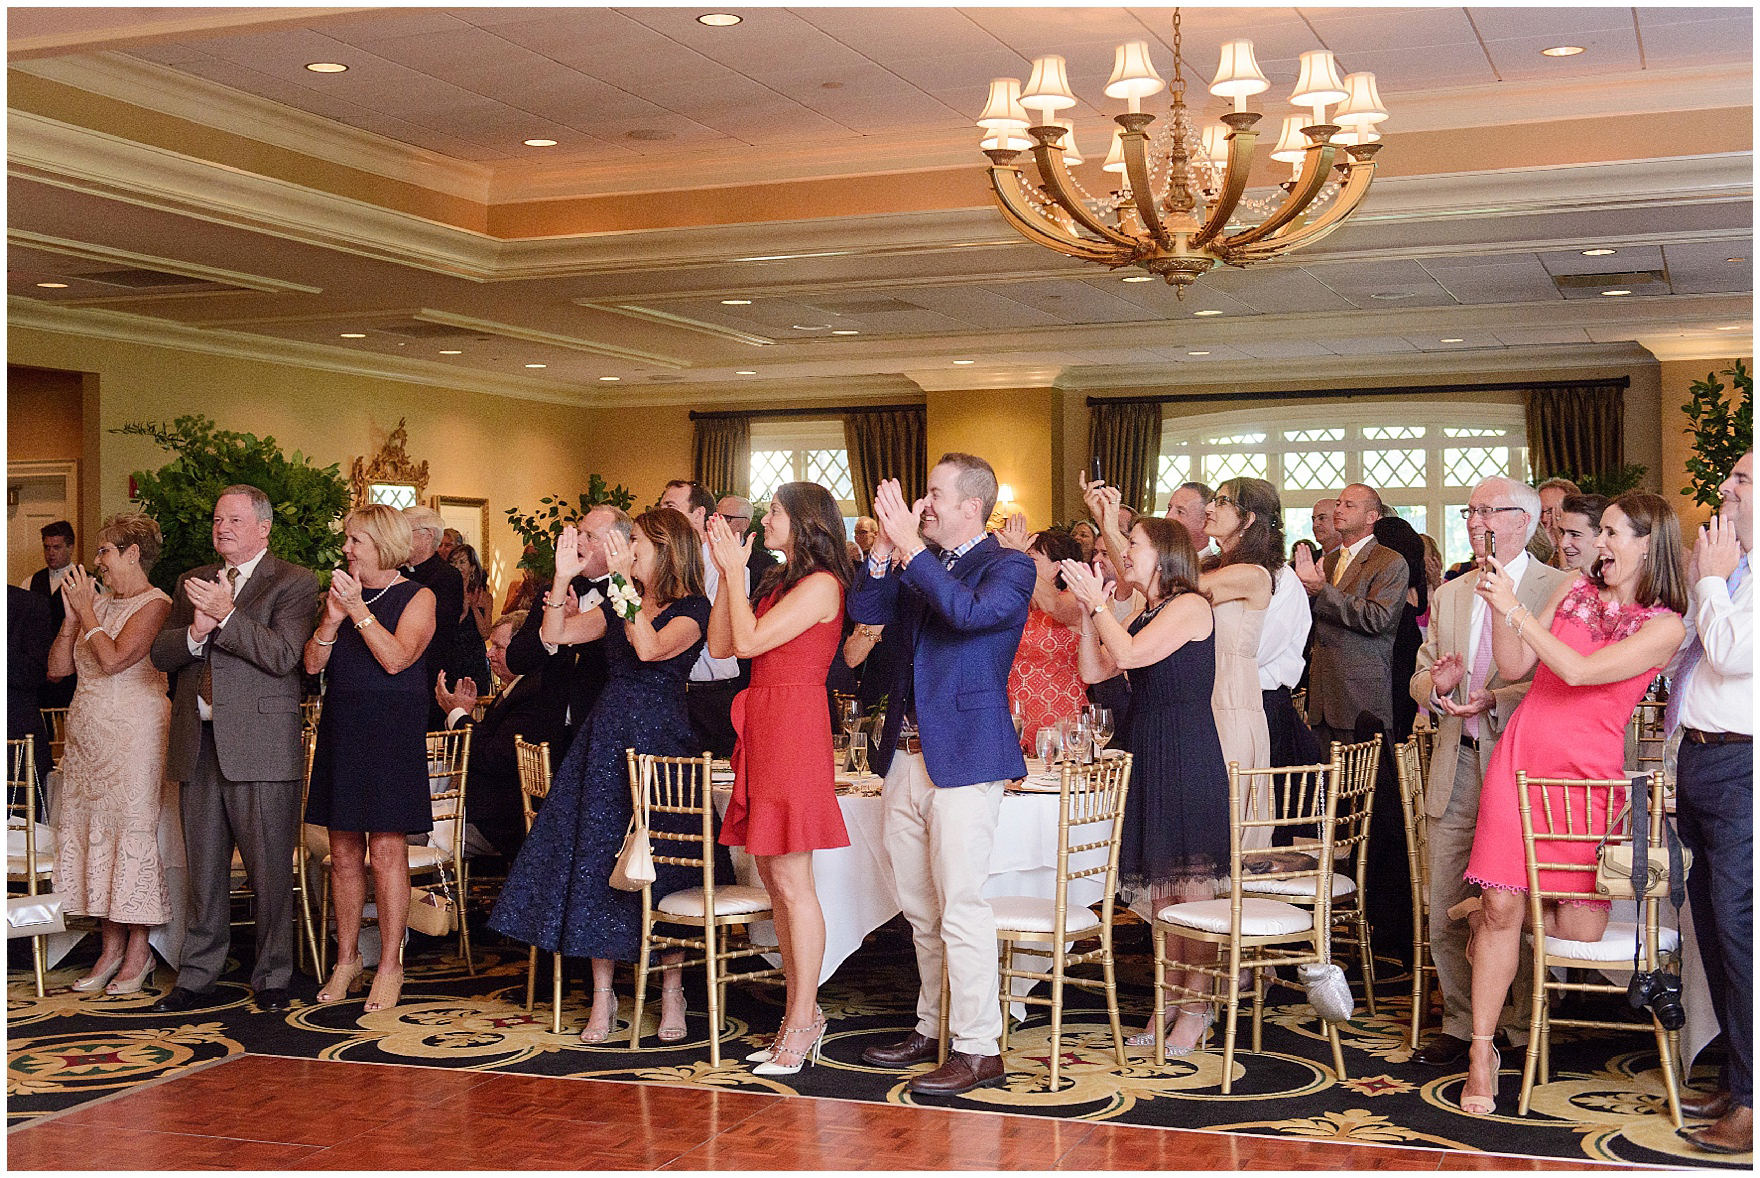 Guests applaud during a Butterfield Country Club wedding.